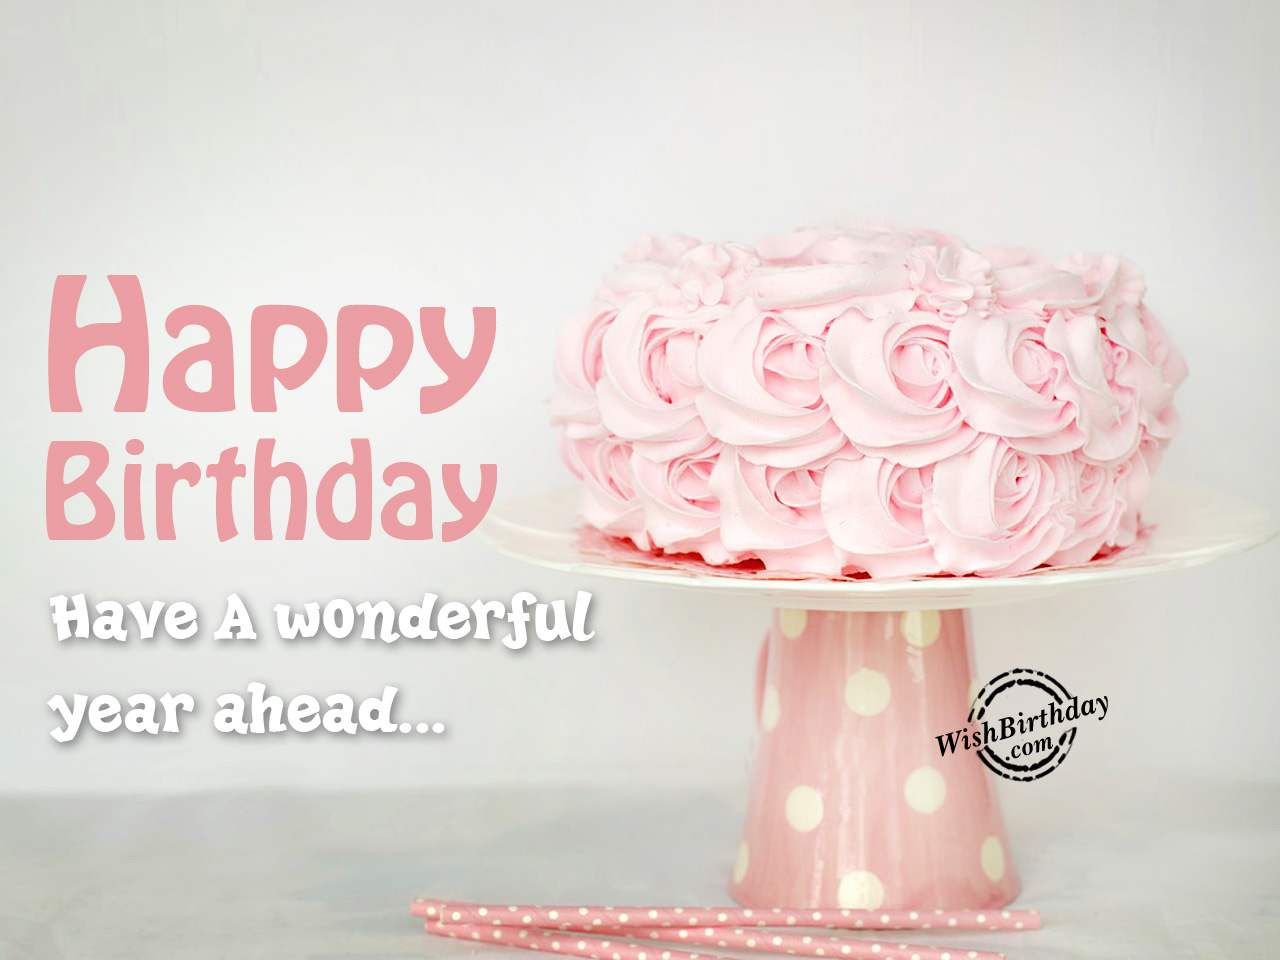 Happy Birthday Wishes Year Ahead ~ Birthday wishes birthday images pictures